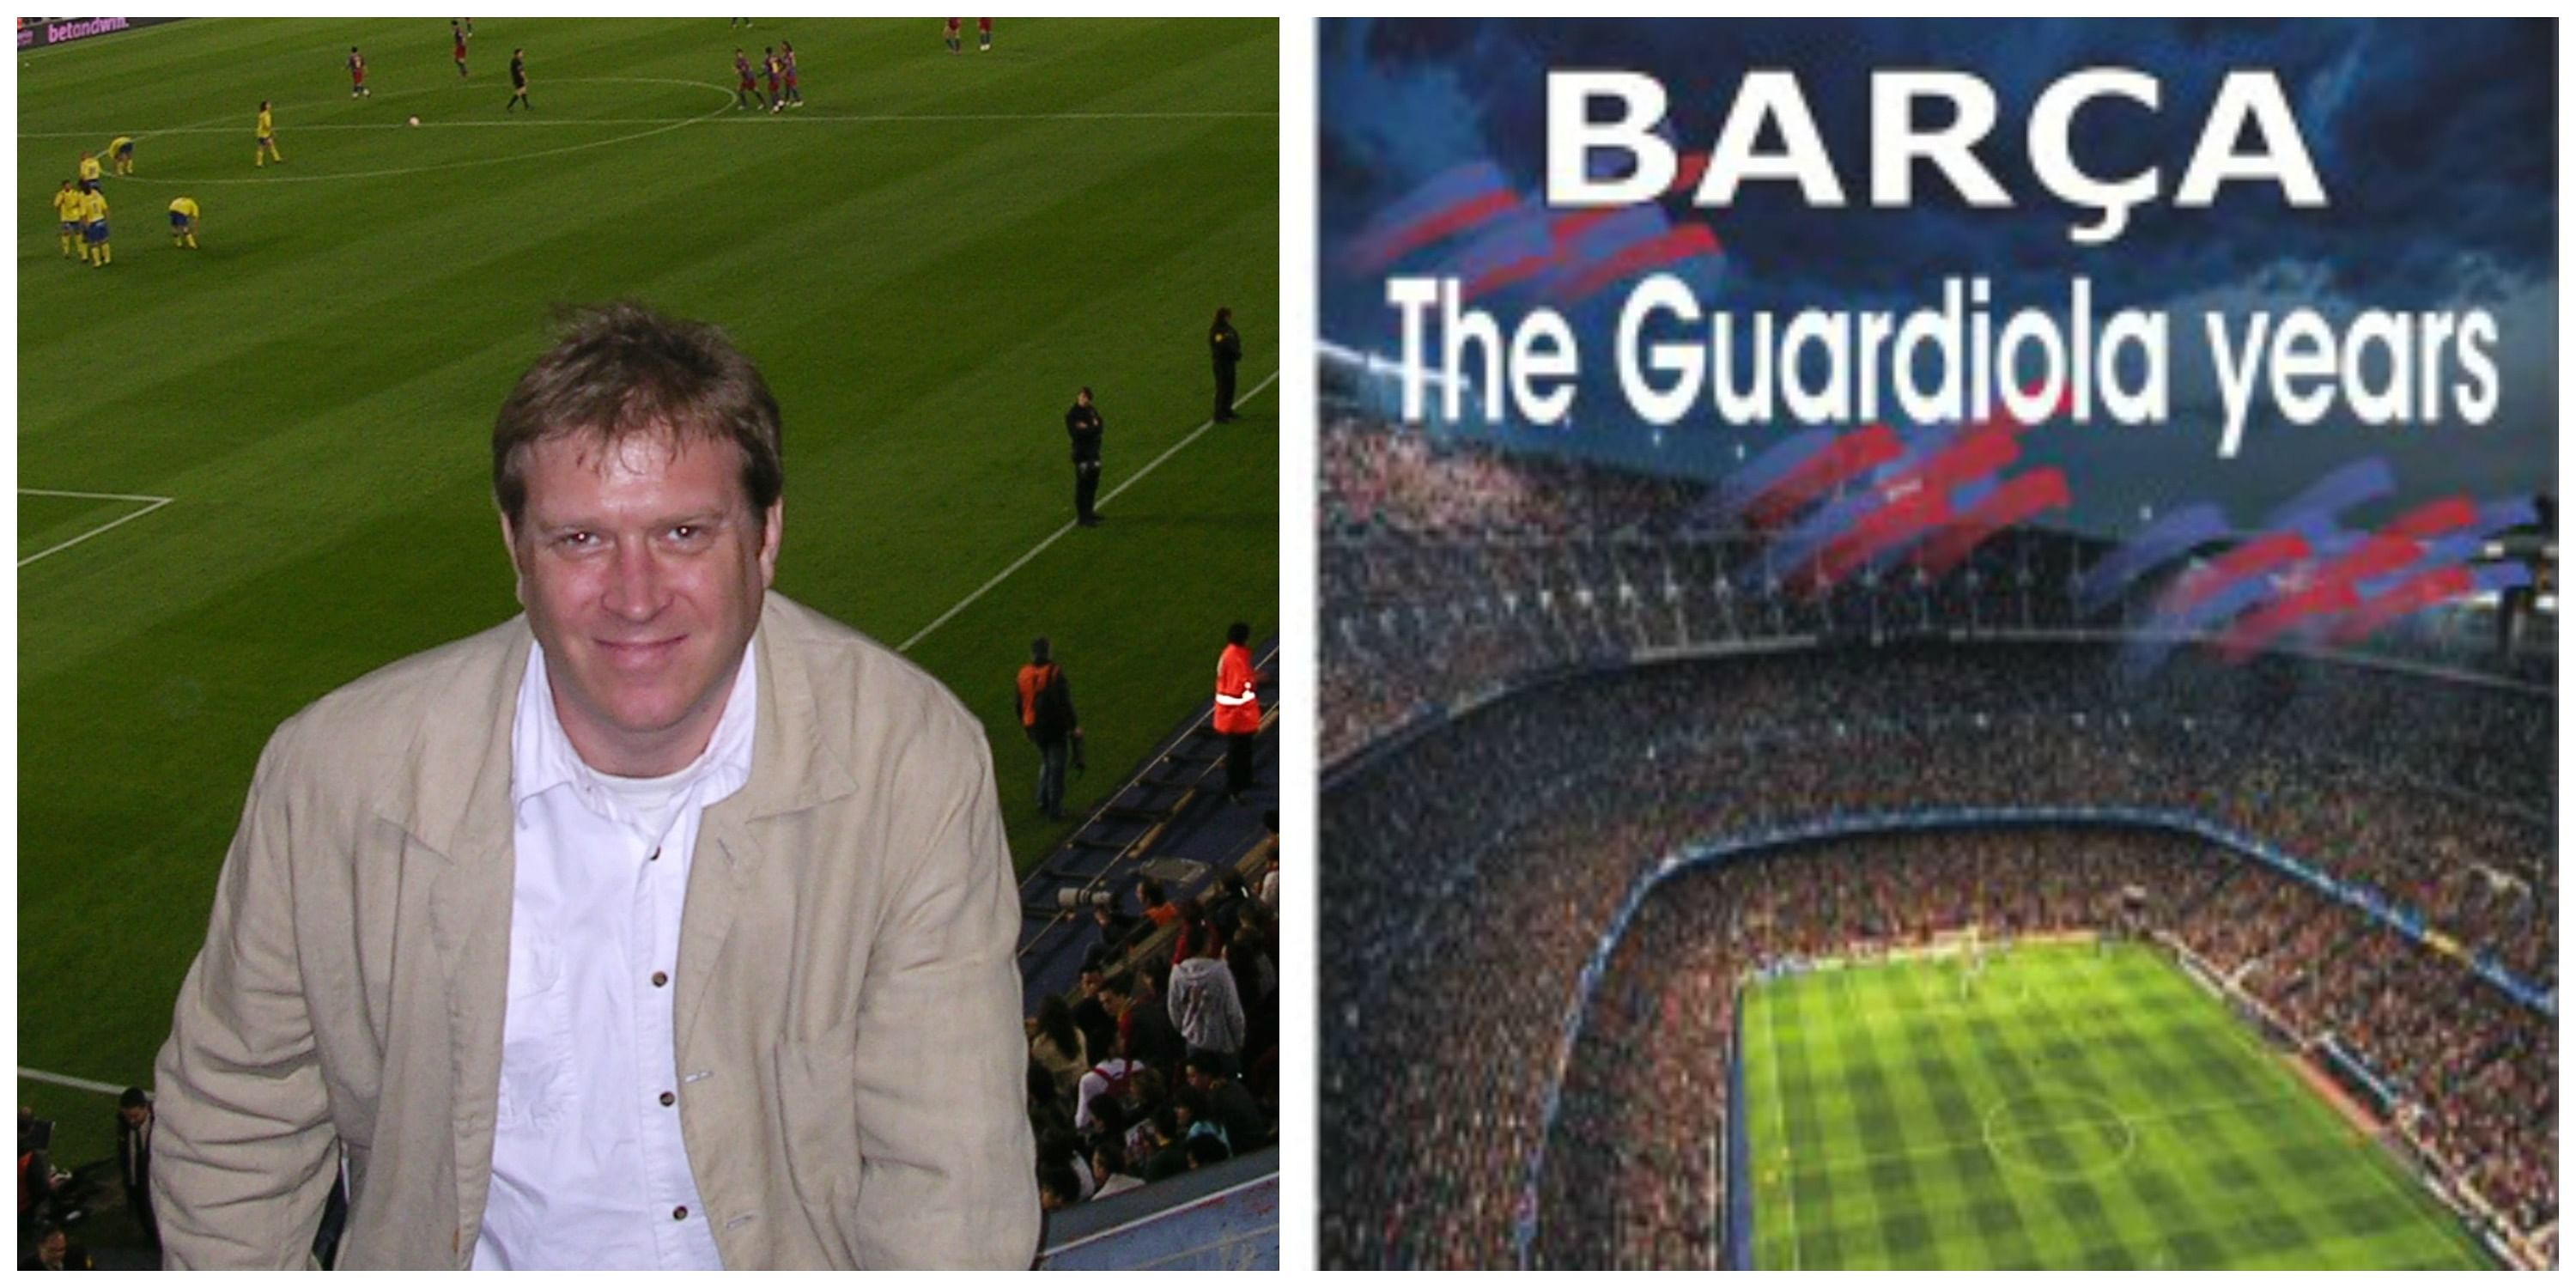 Interview with Nic Aldam - Author of 'Barca: The Guardiola Years'